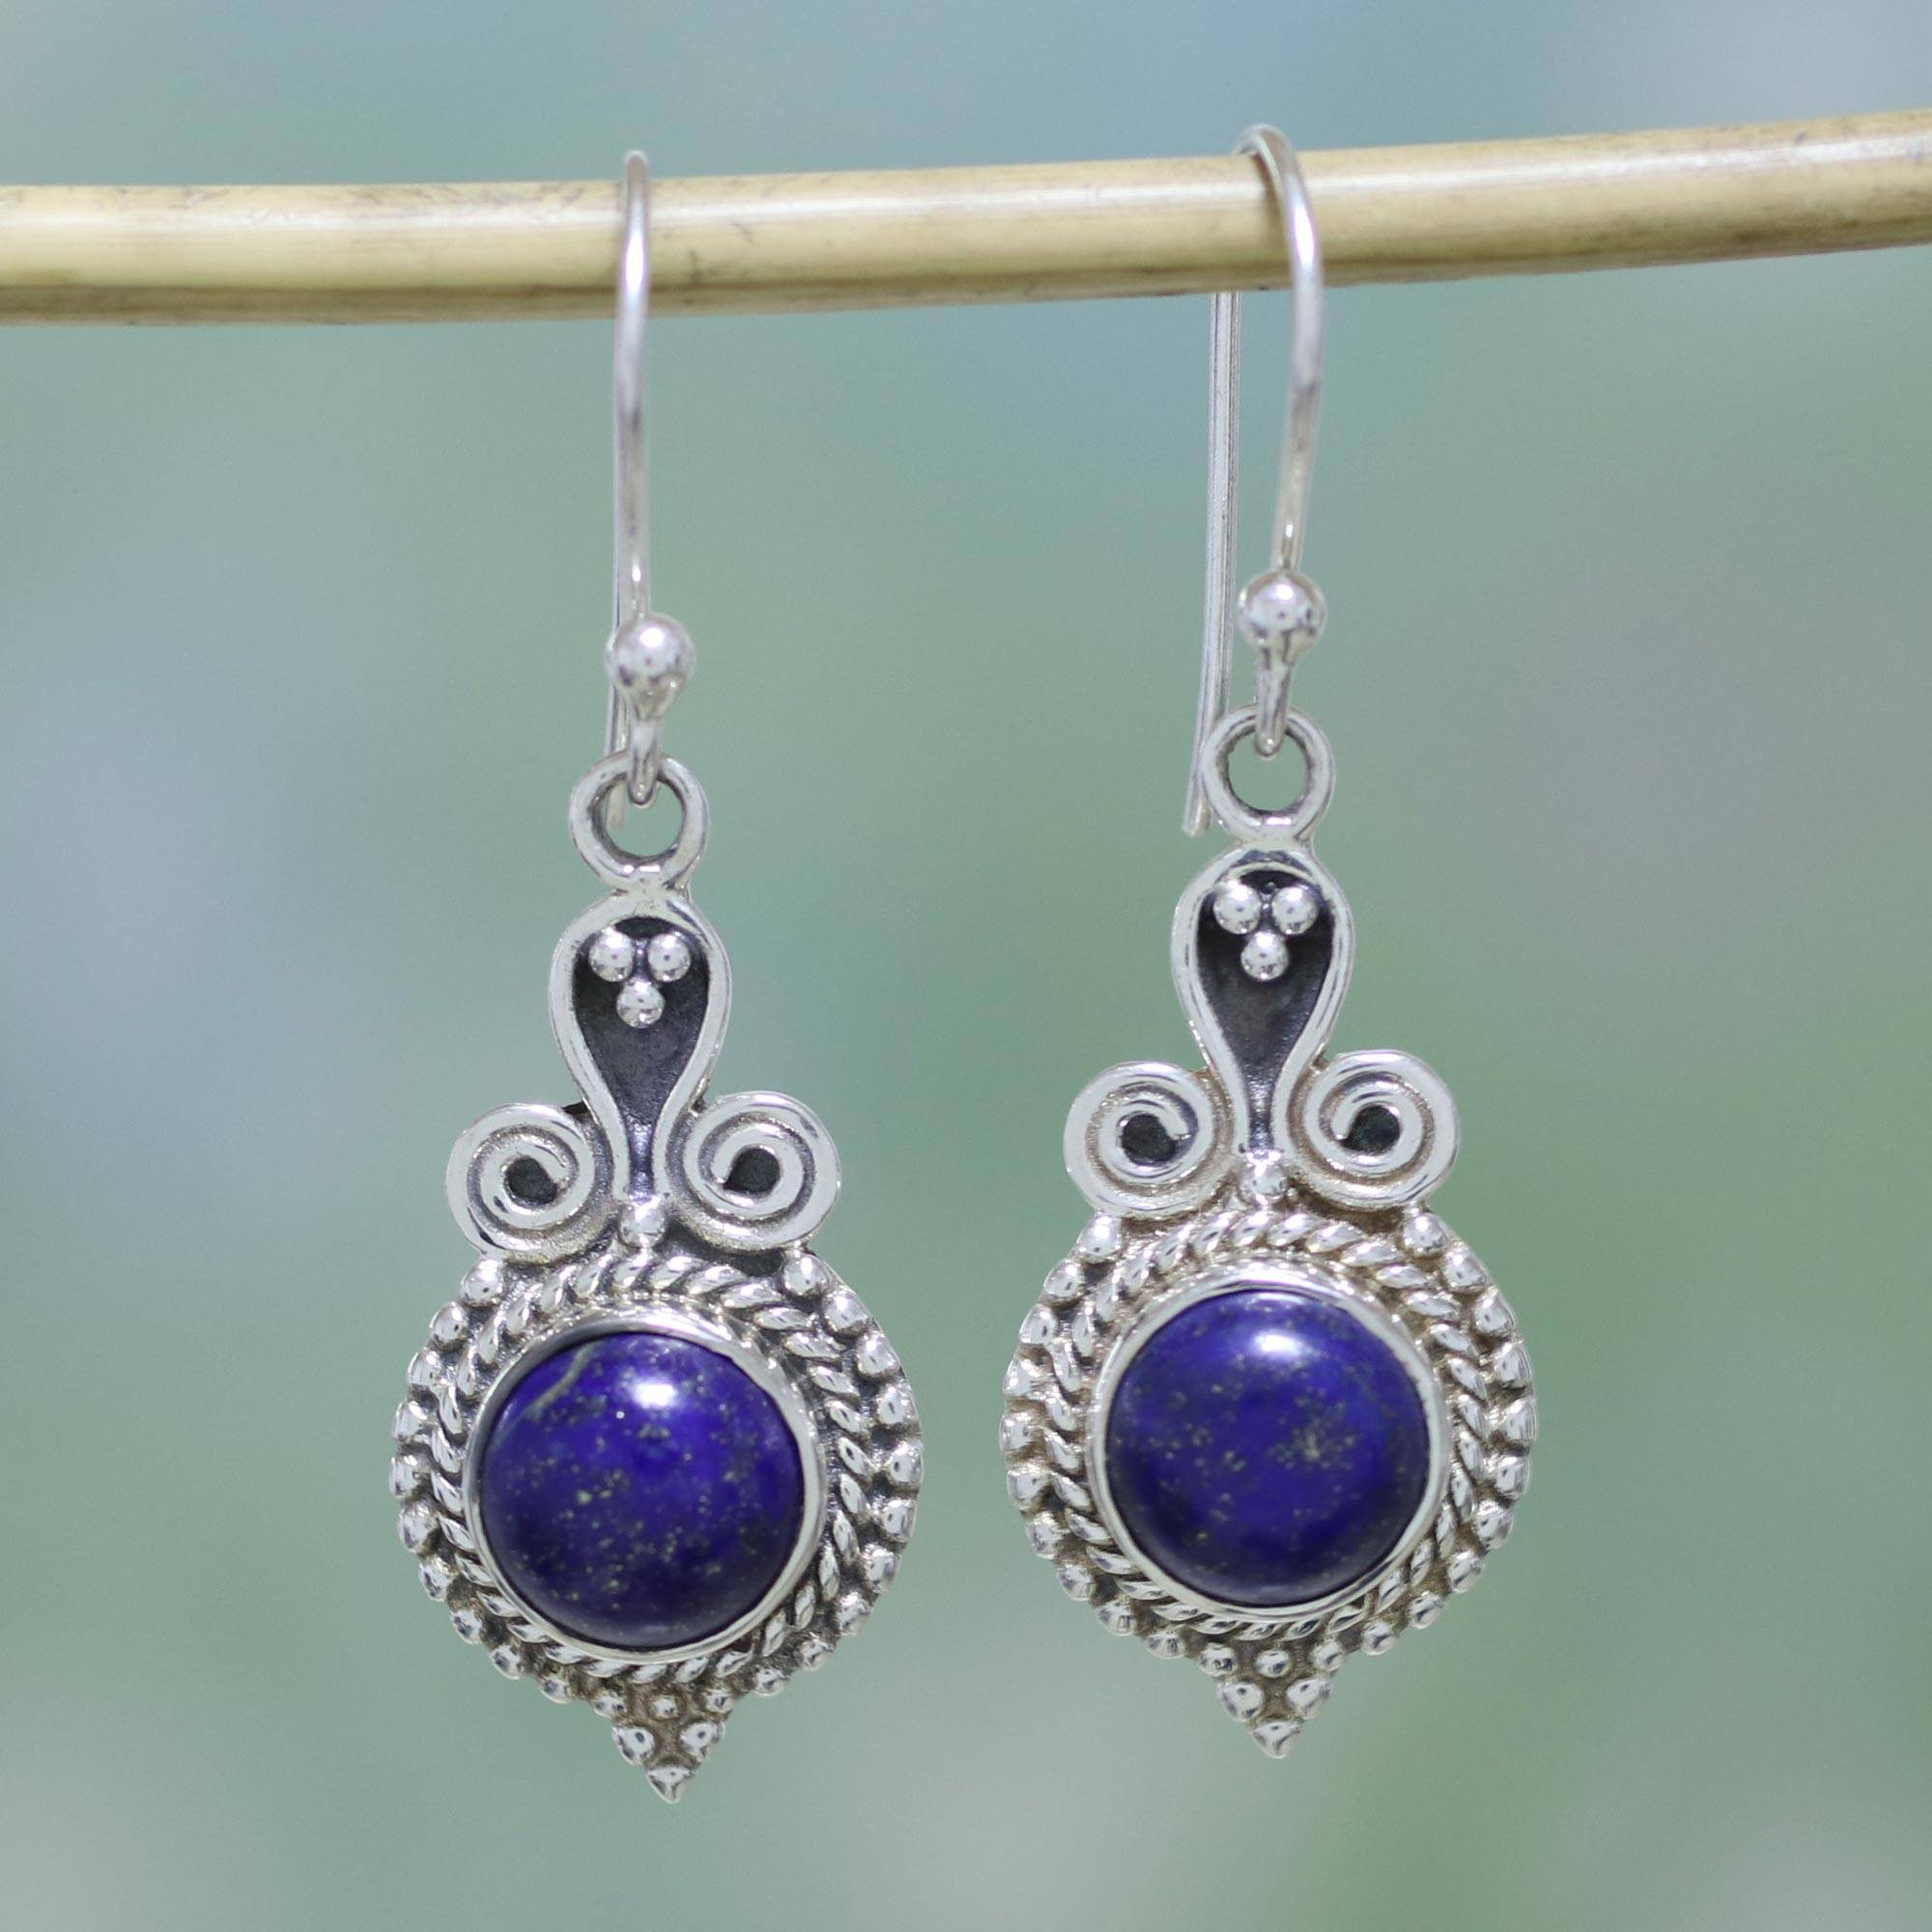 UNICEF Market | 925 Sterling Silver and Lapis Lazuli India Jewelry ...